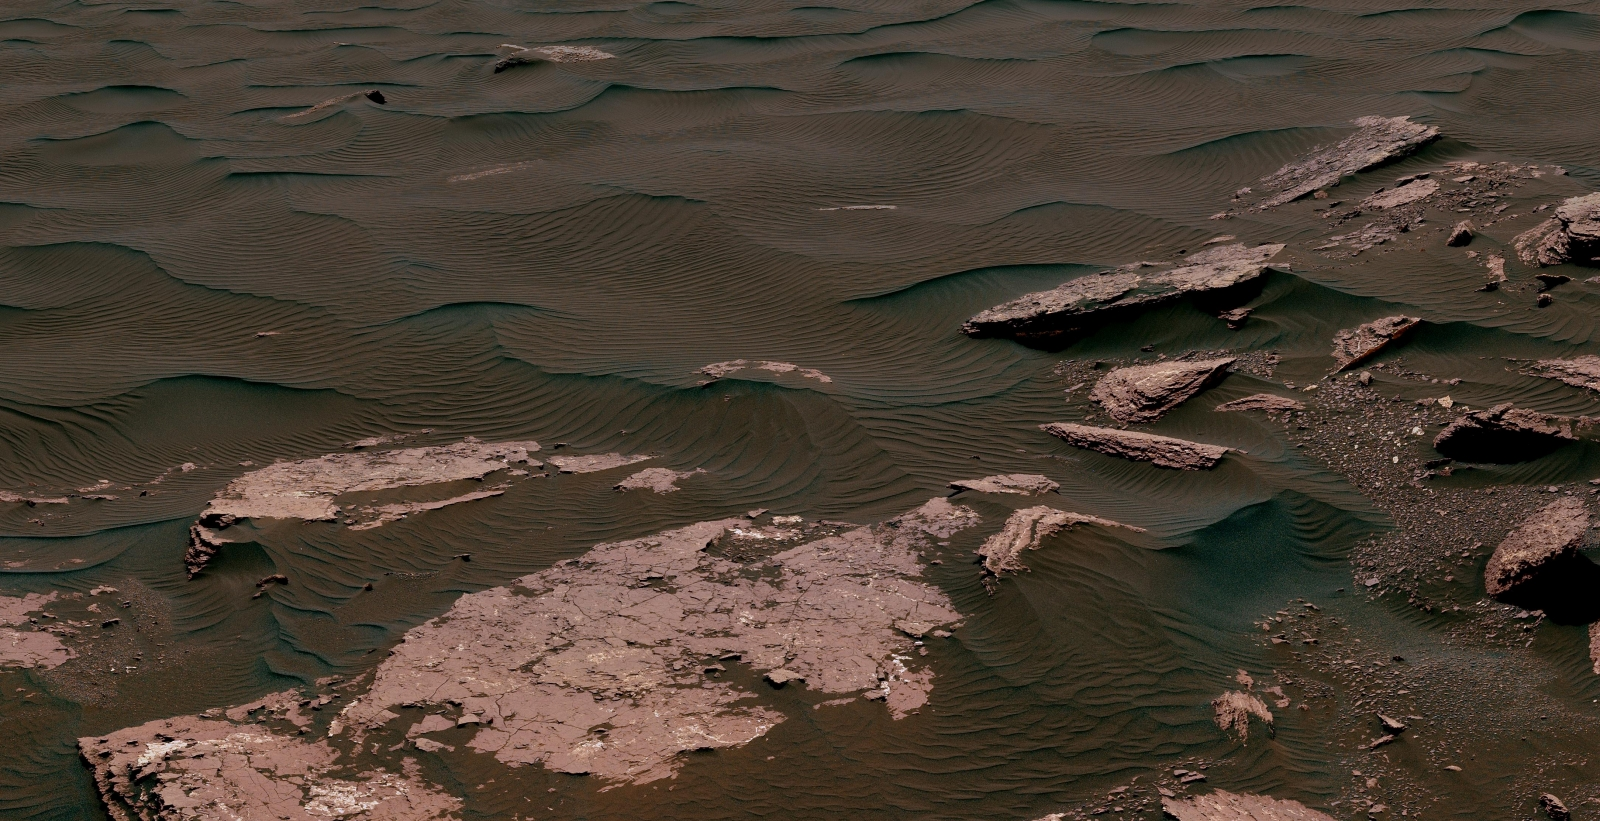 NASA's Mars Curiosity Rover Discovers Dark Sand Dunes on Mars